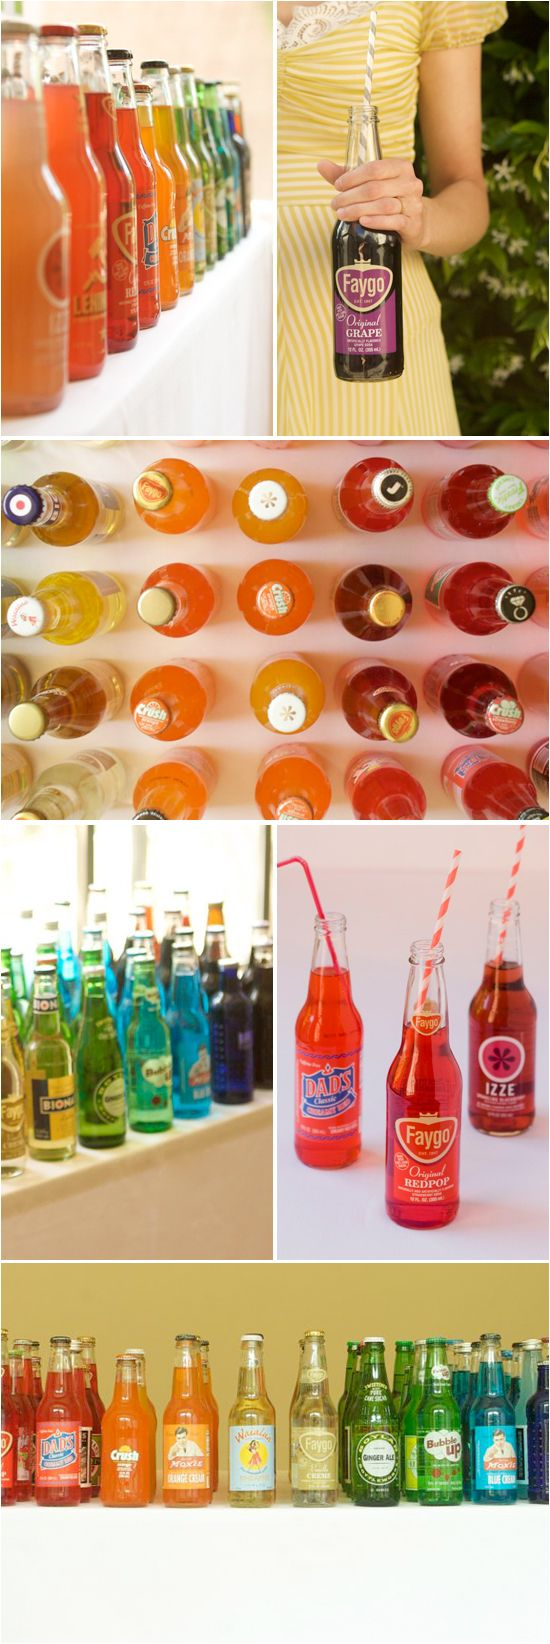 This looks amazing. <3 Old fashioned soda pops are my weakness.